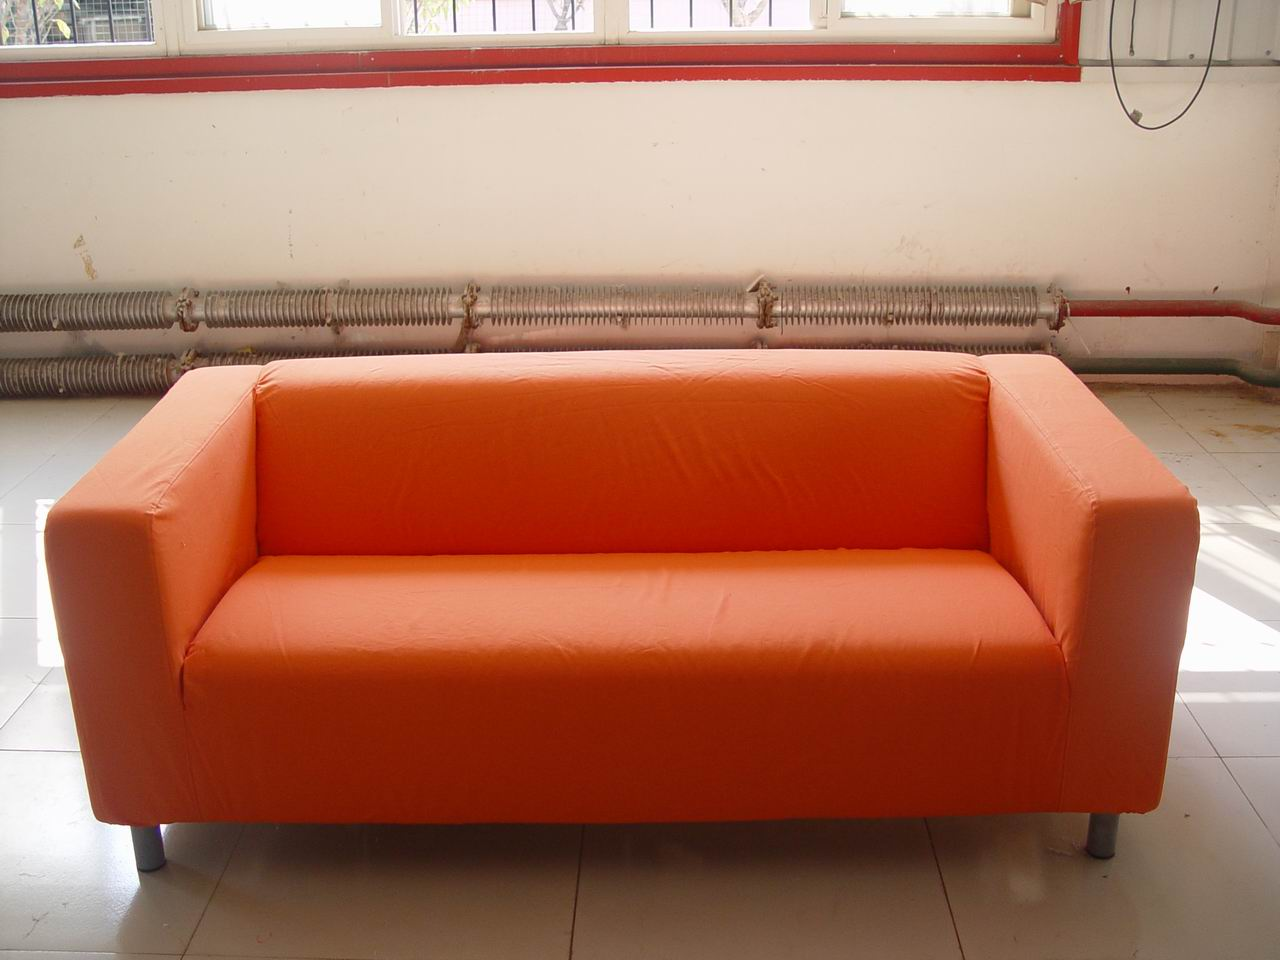 Sofa Klippan Ikea Klippan Sofa Cover Home Furniture Design